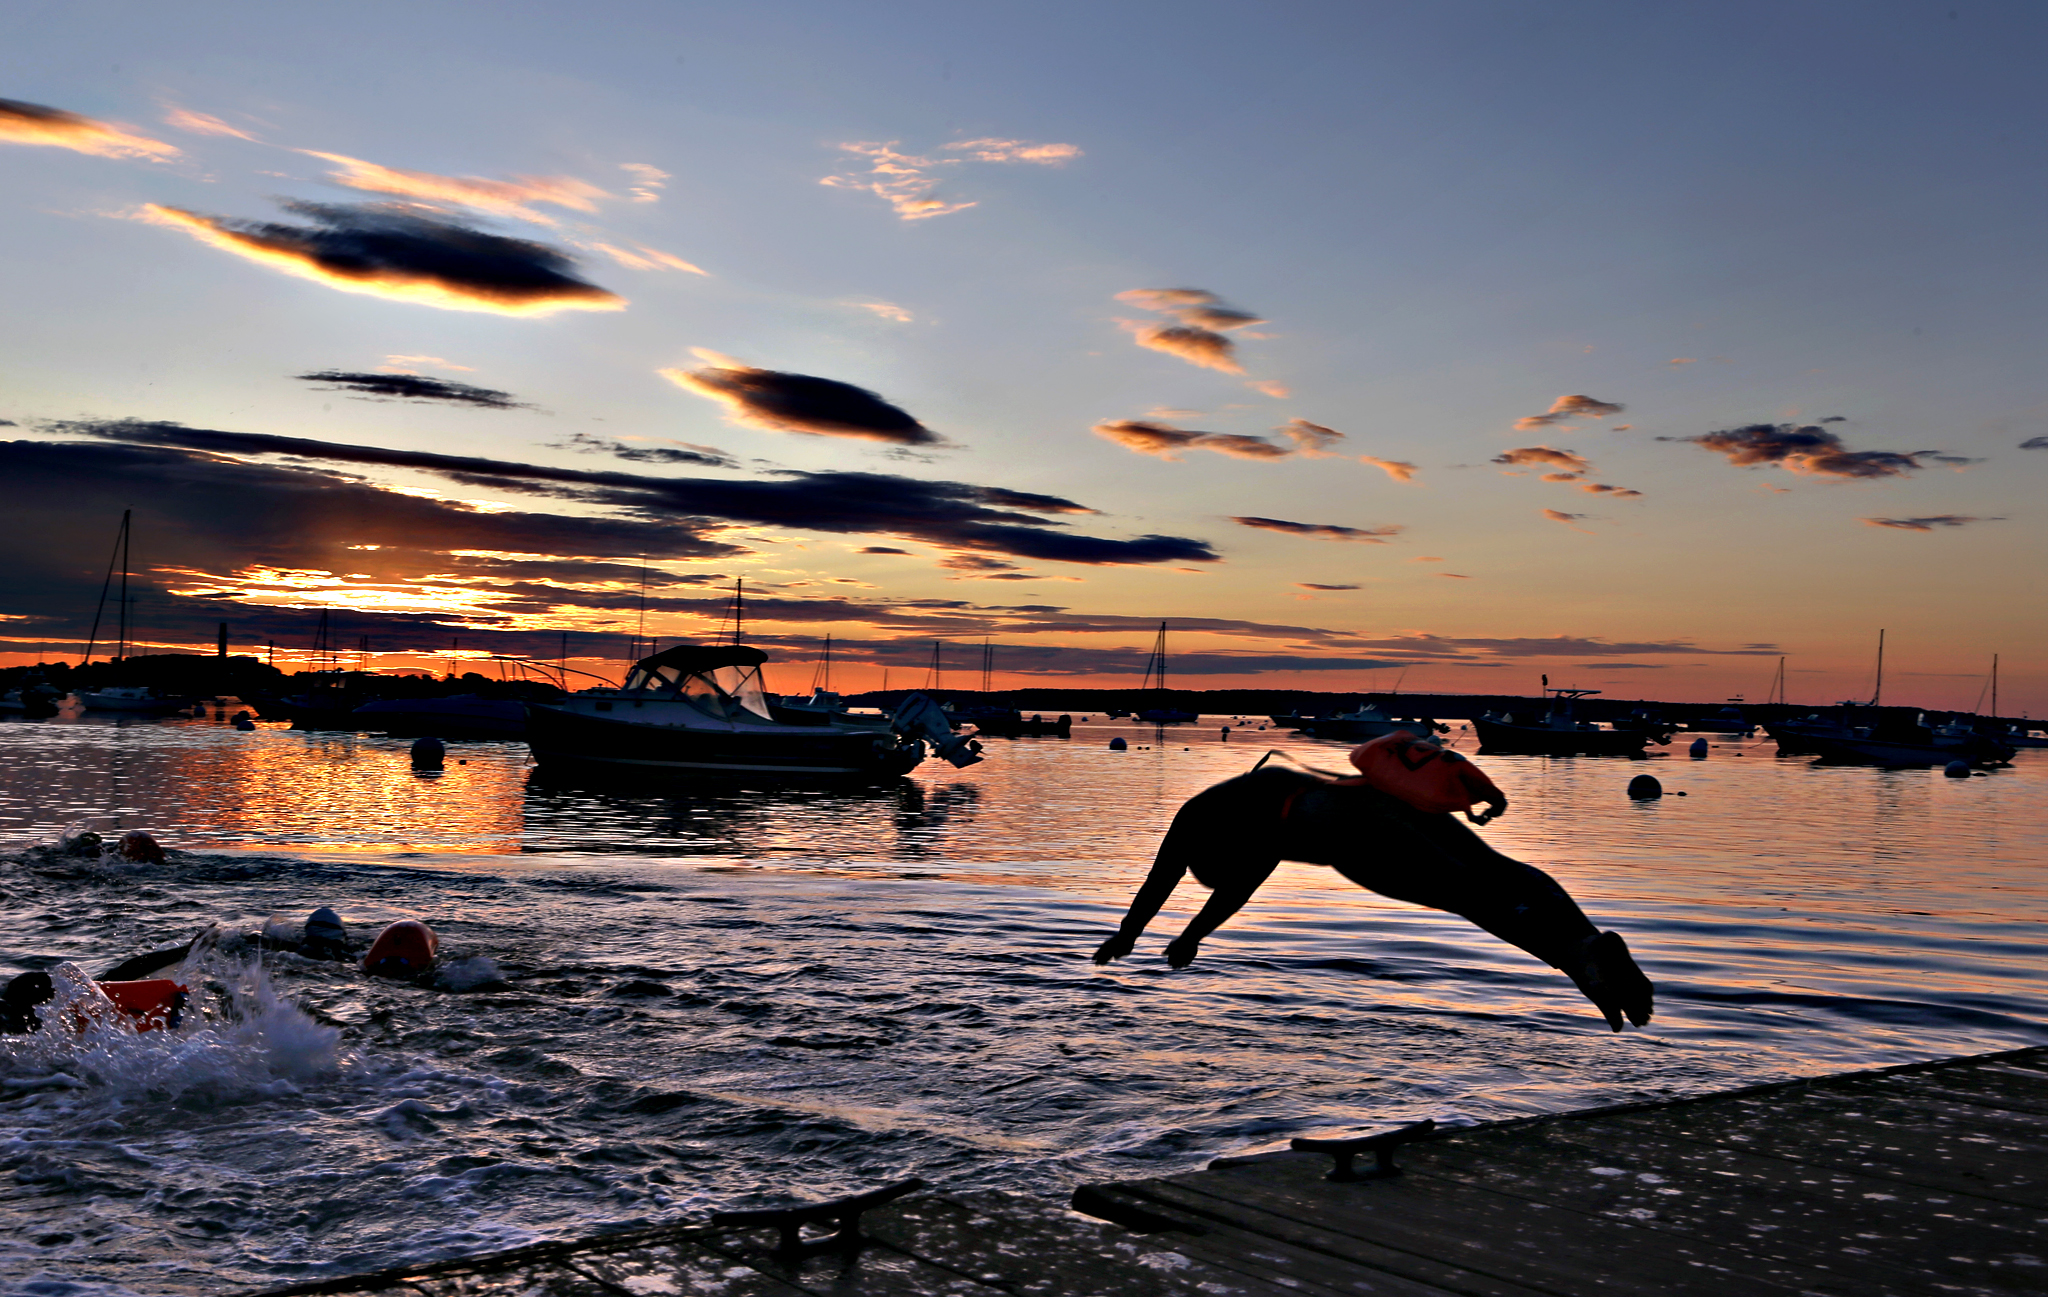 A long-distance swimmer dives into the Atlantic Ocean at dawn, Friday, July 24, 2015, in Falmouth, Maine. The woman is part of a group that regularly starts their day with a 2-mile swim. Many of the swimmers keep a float tethered to their bodies for safety